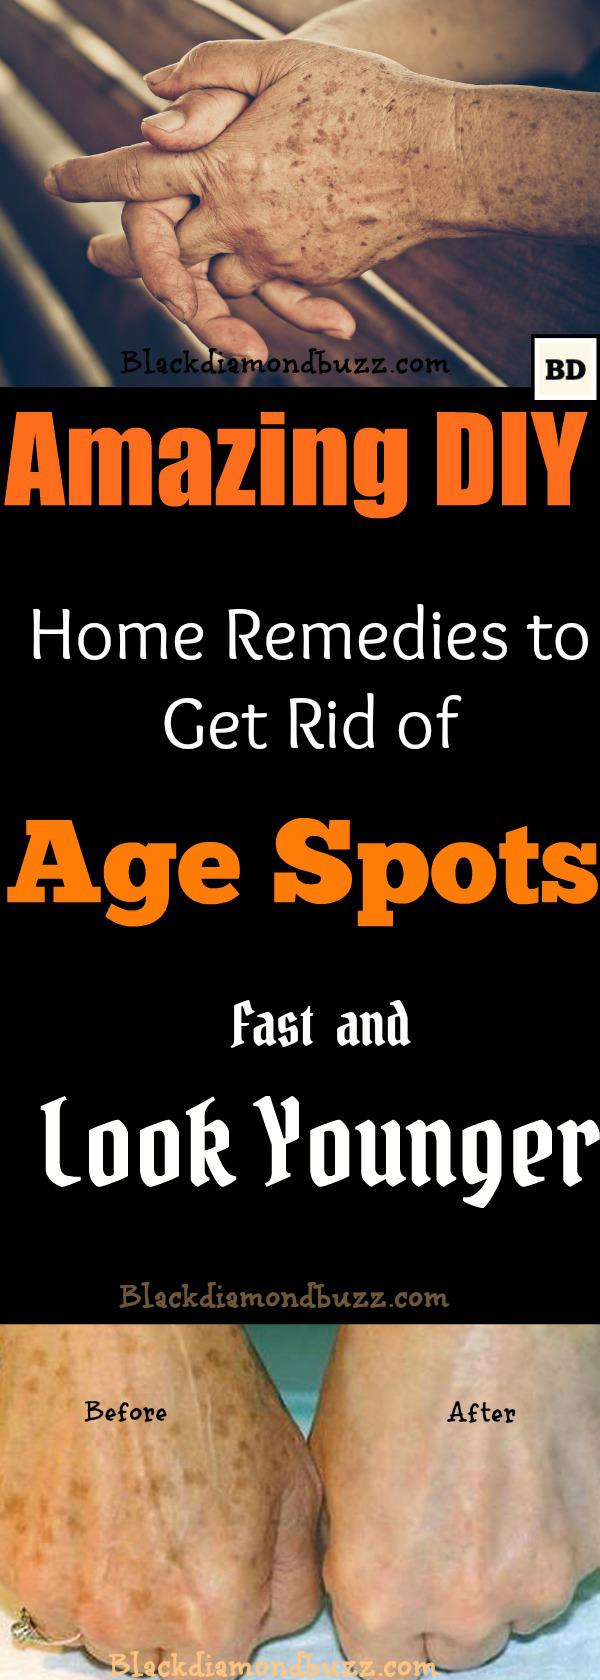 How to Get Rid of Age Spots on Face   7 Home Remedies That Work Fast